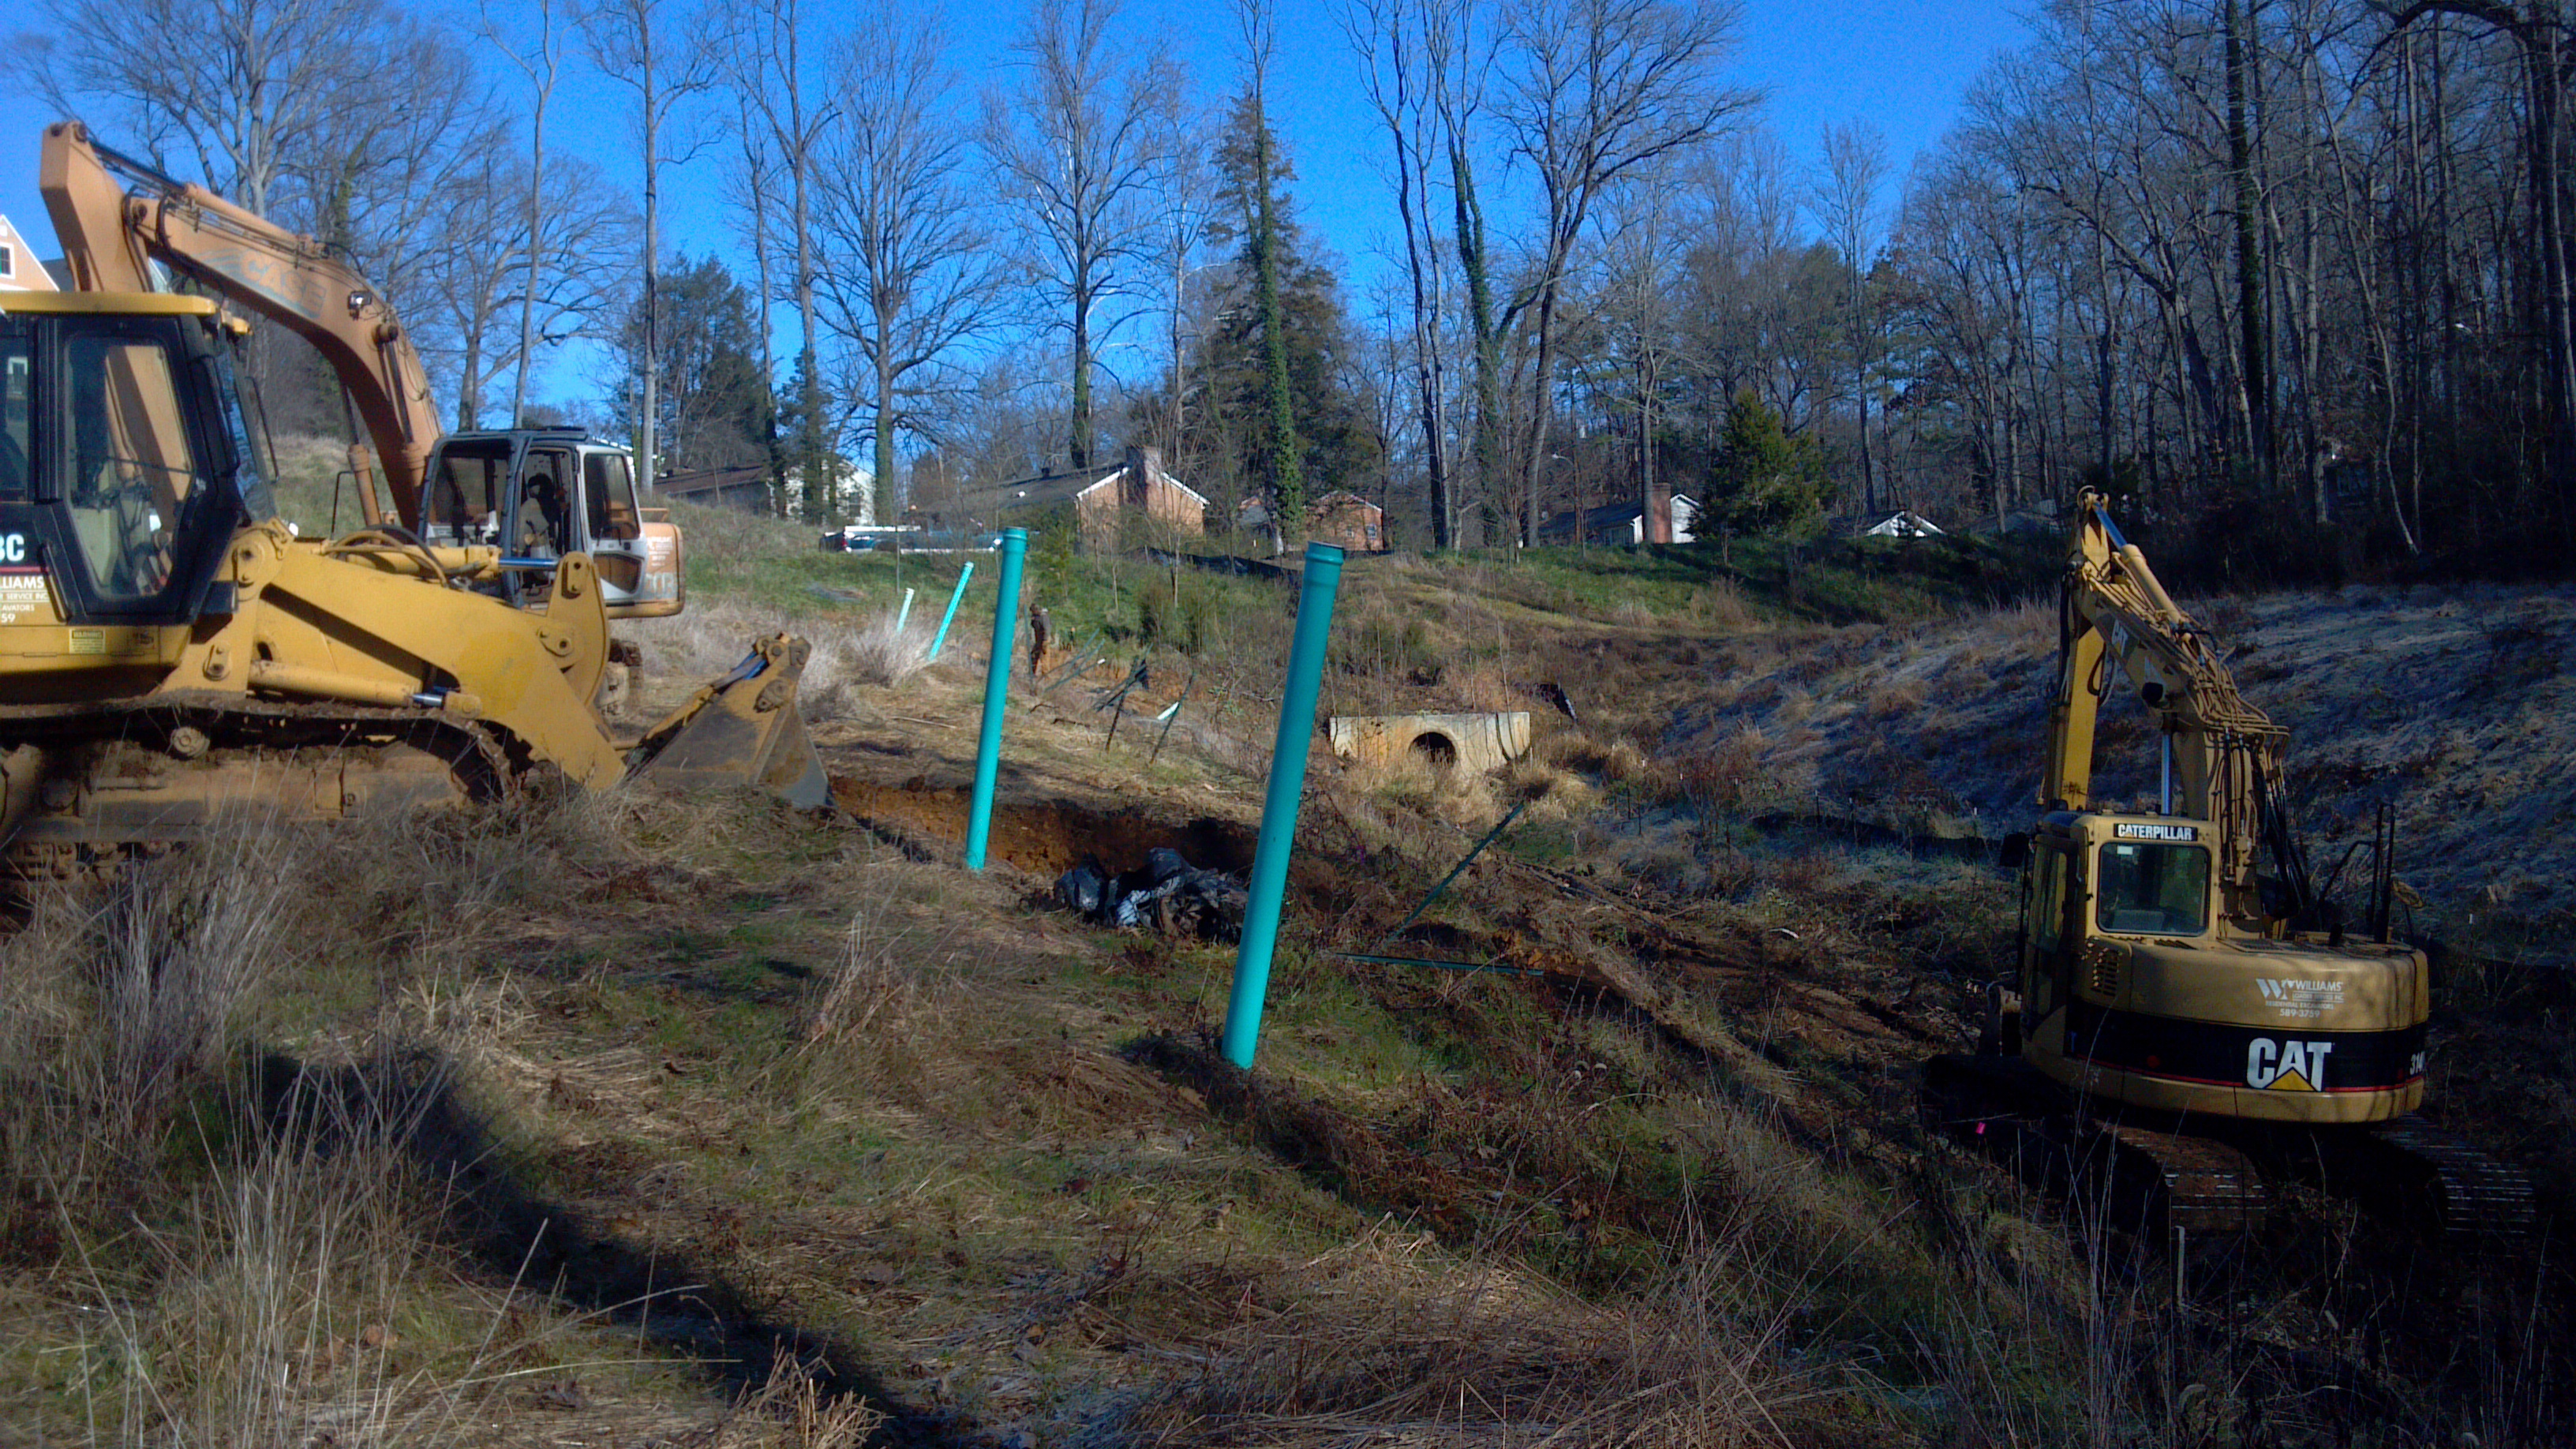 Excavating for storm water